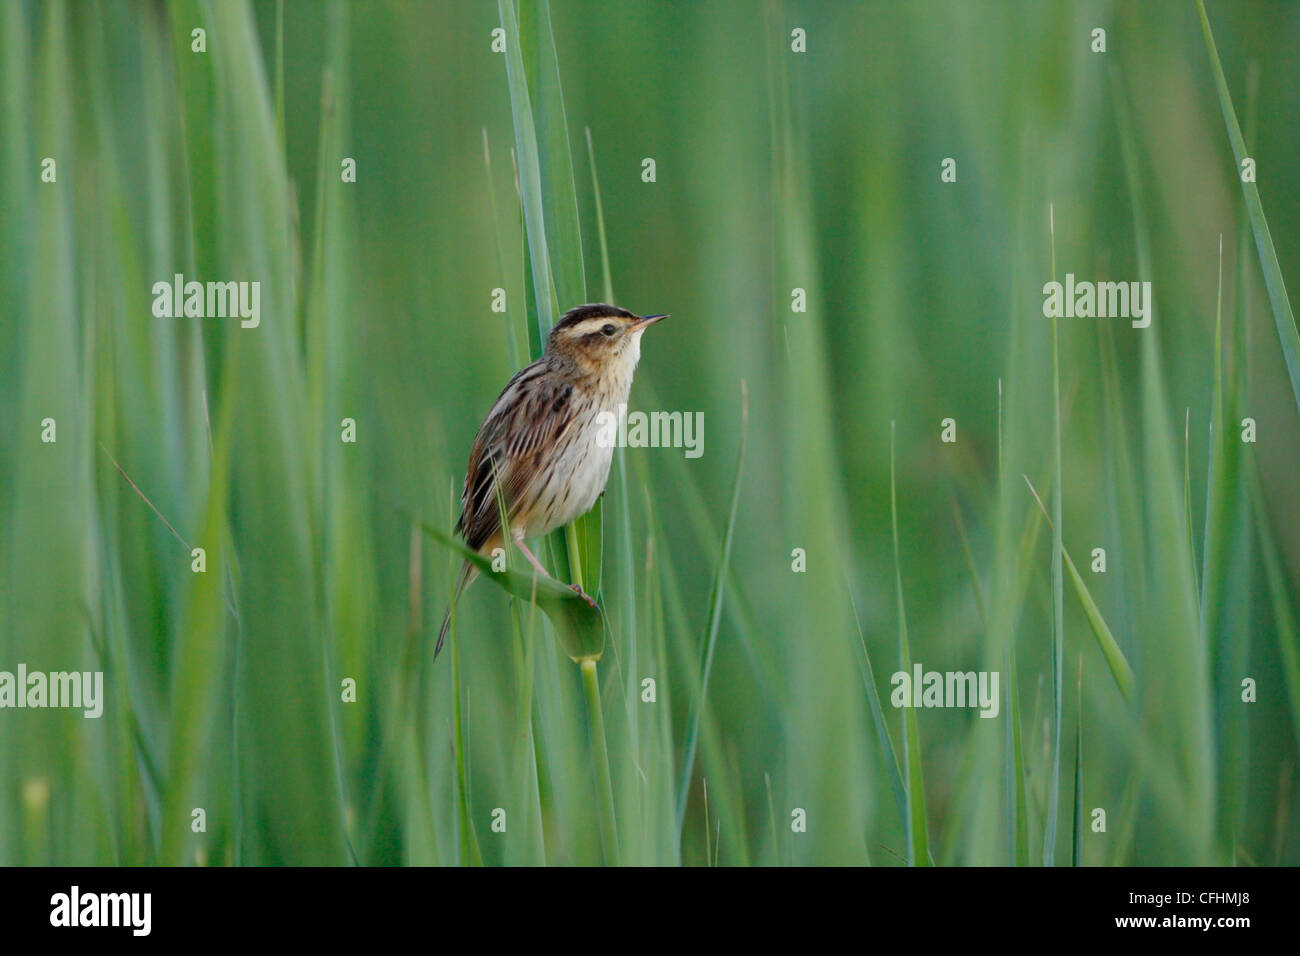 adult AQUATIC WARBLER Acrocephalus paludicola on its breeding grounds at Biebrza Marshes, Poland. May 2010. - Stock Image